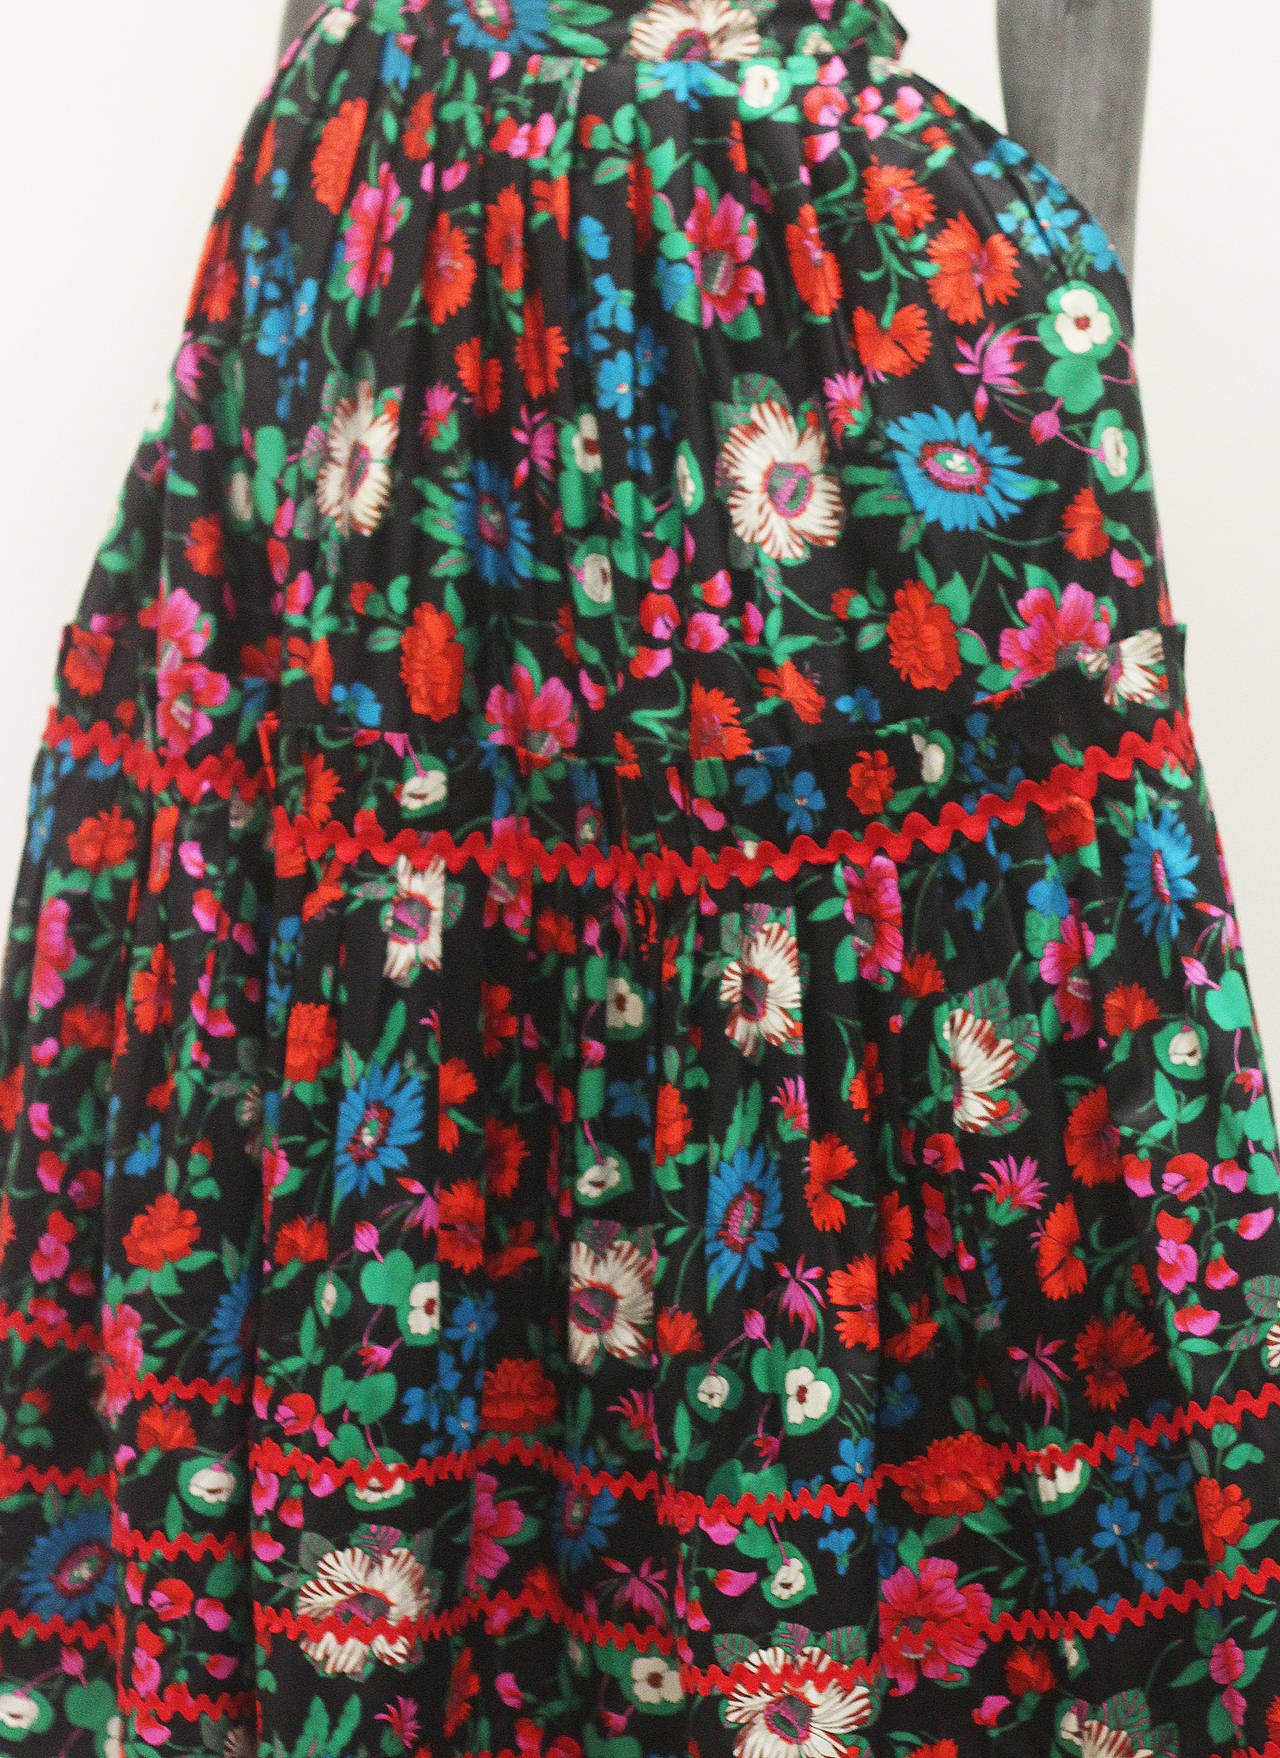 1970s Yves Saint Laurent Floral Gypsy Skirt In Excellent Condition For Sale In London, GB